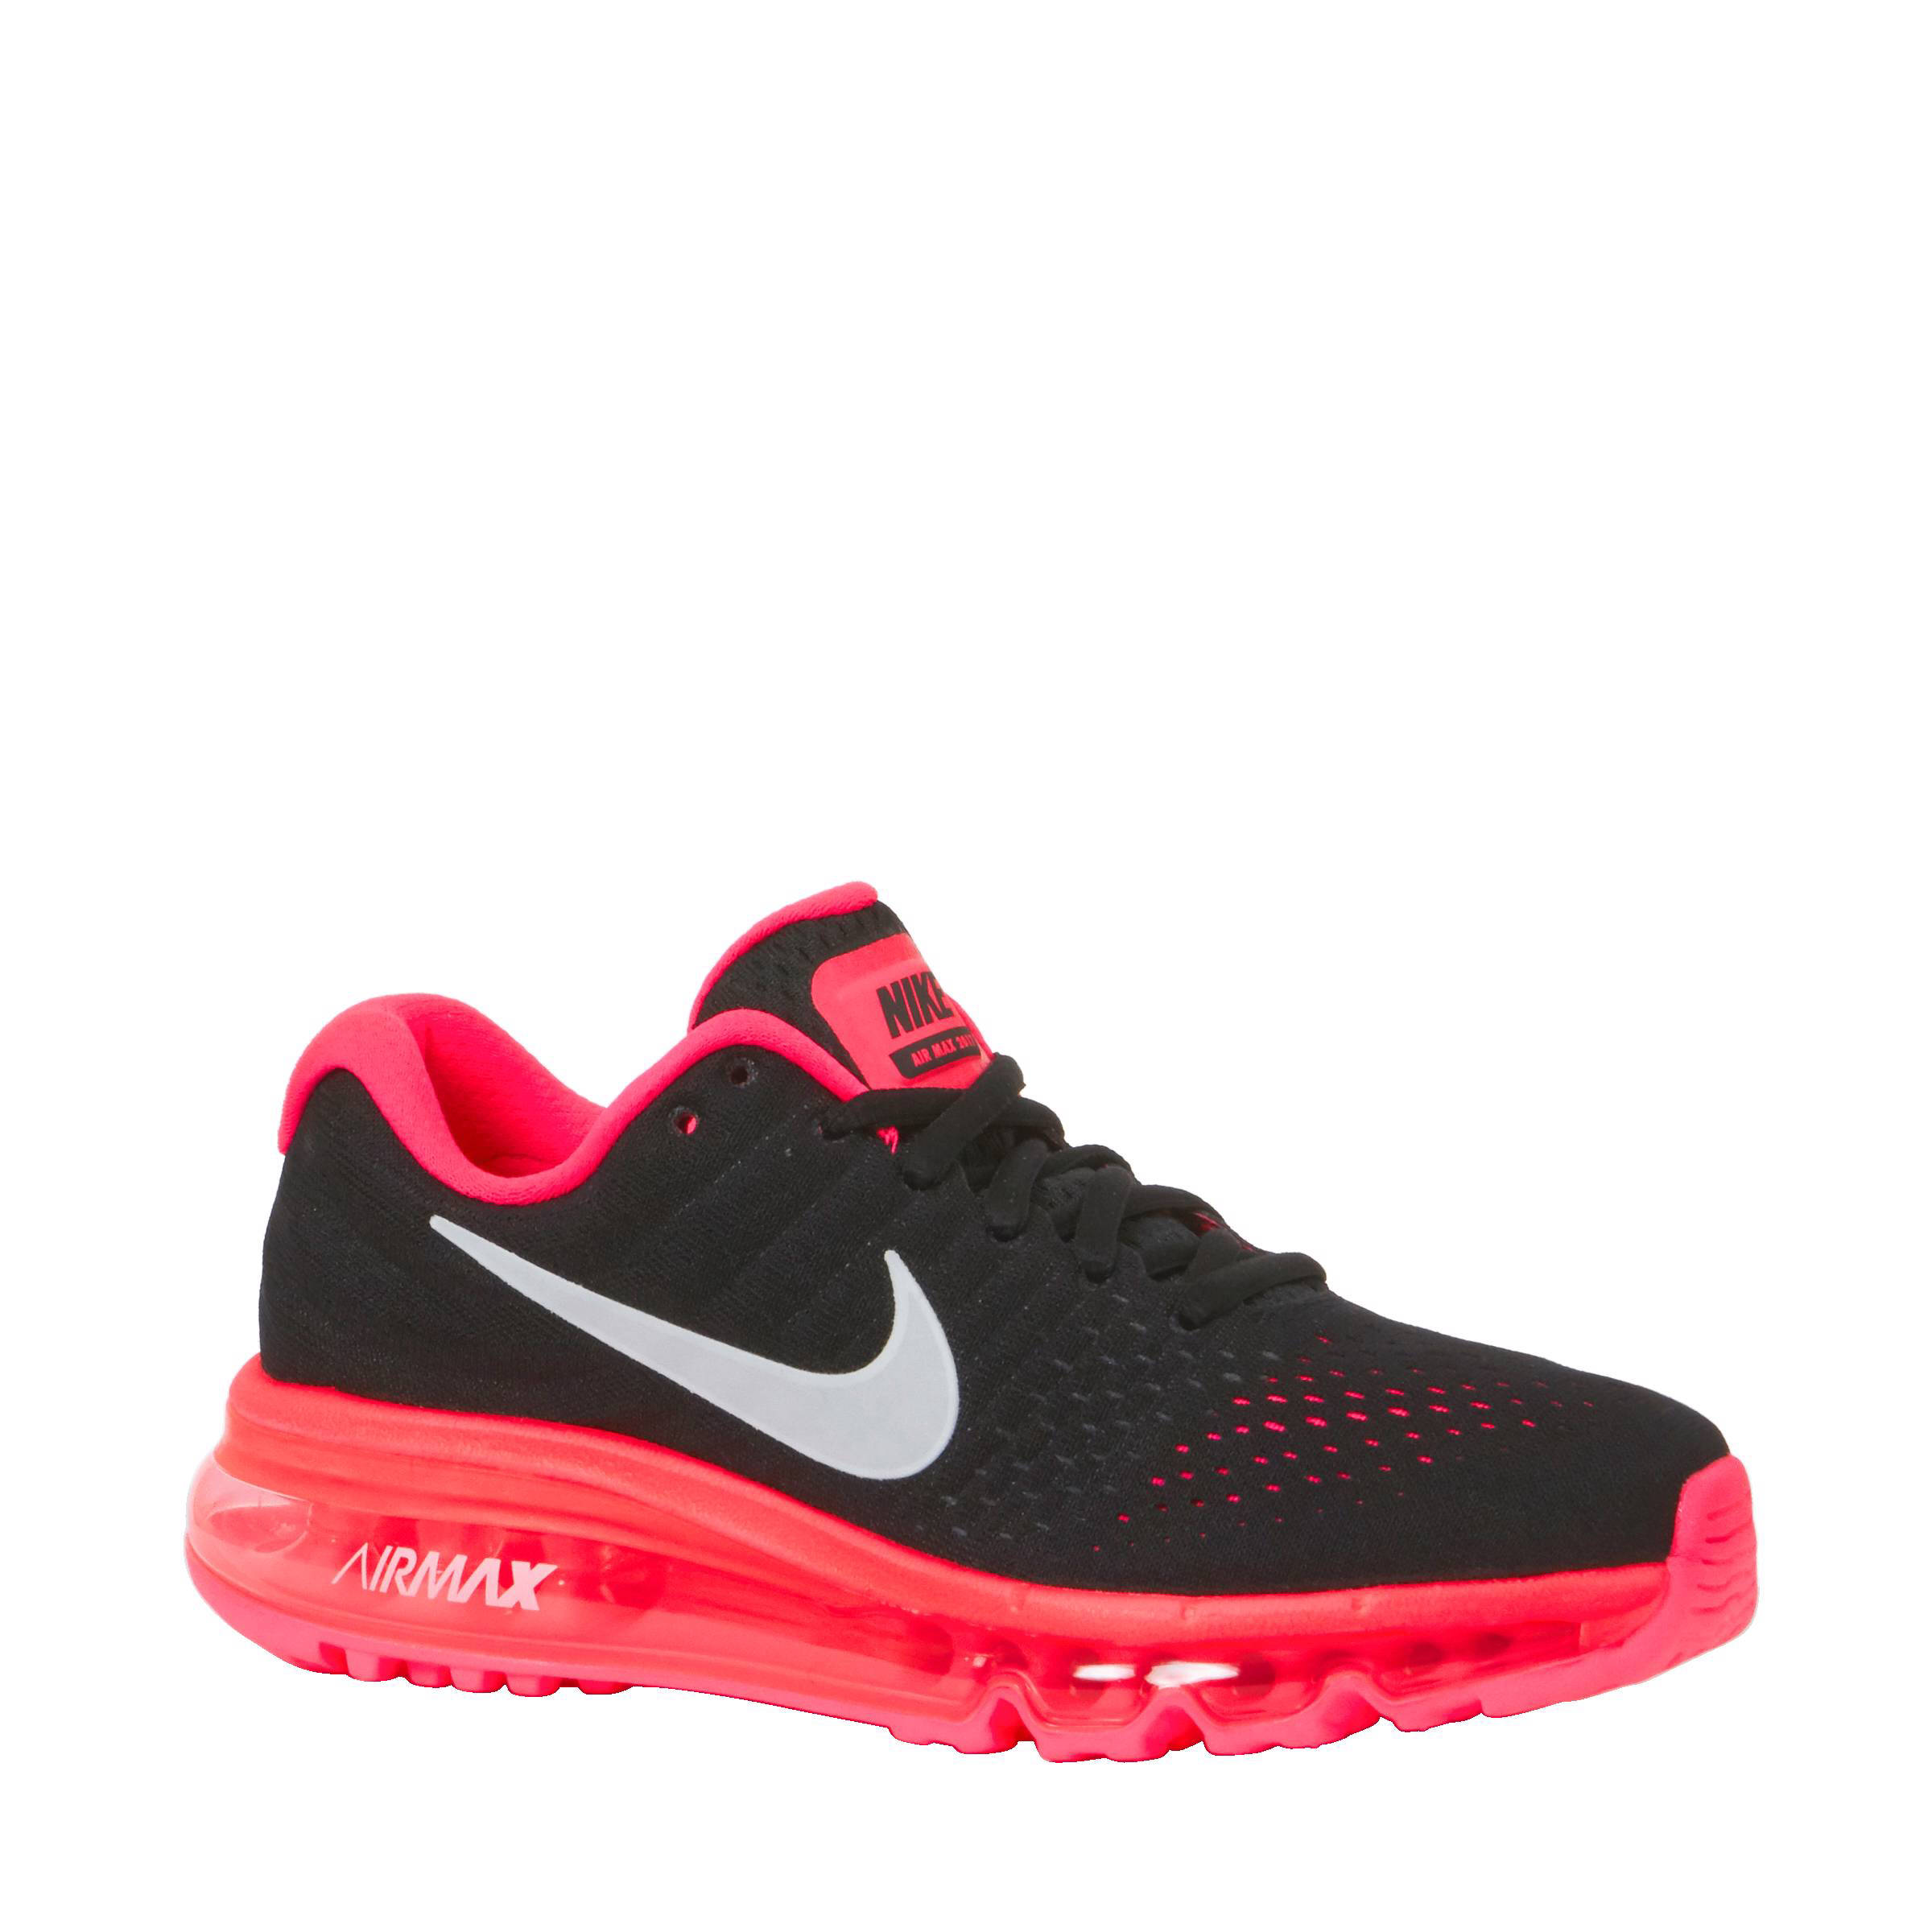 nike air max neon roze